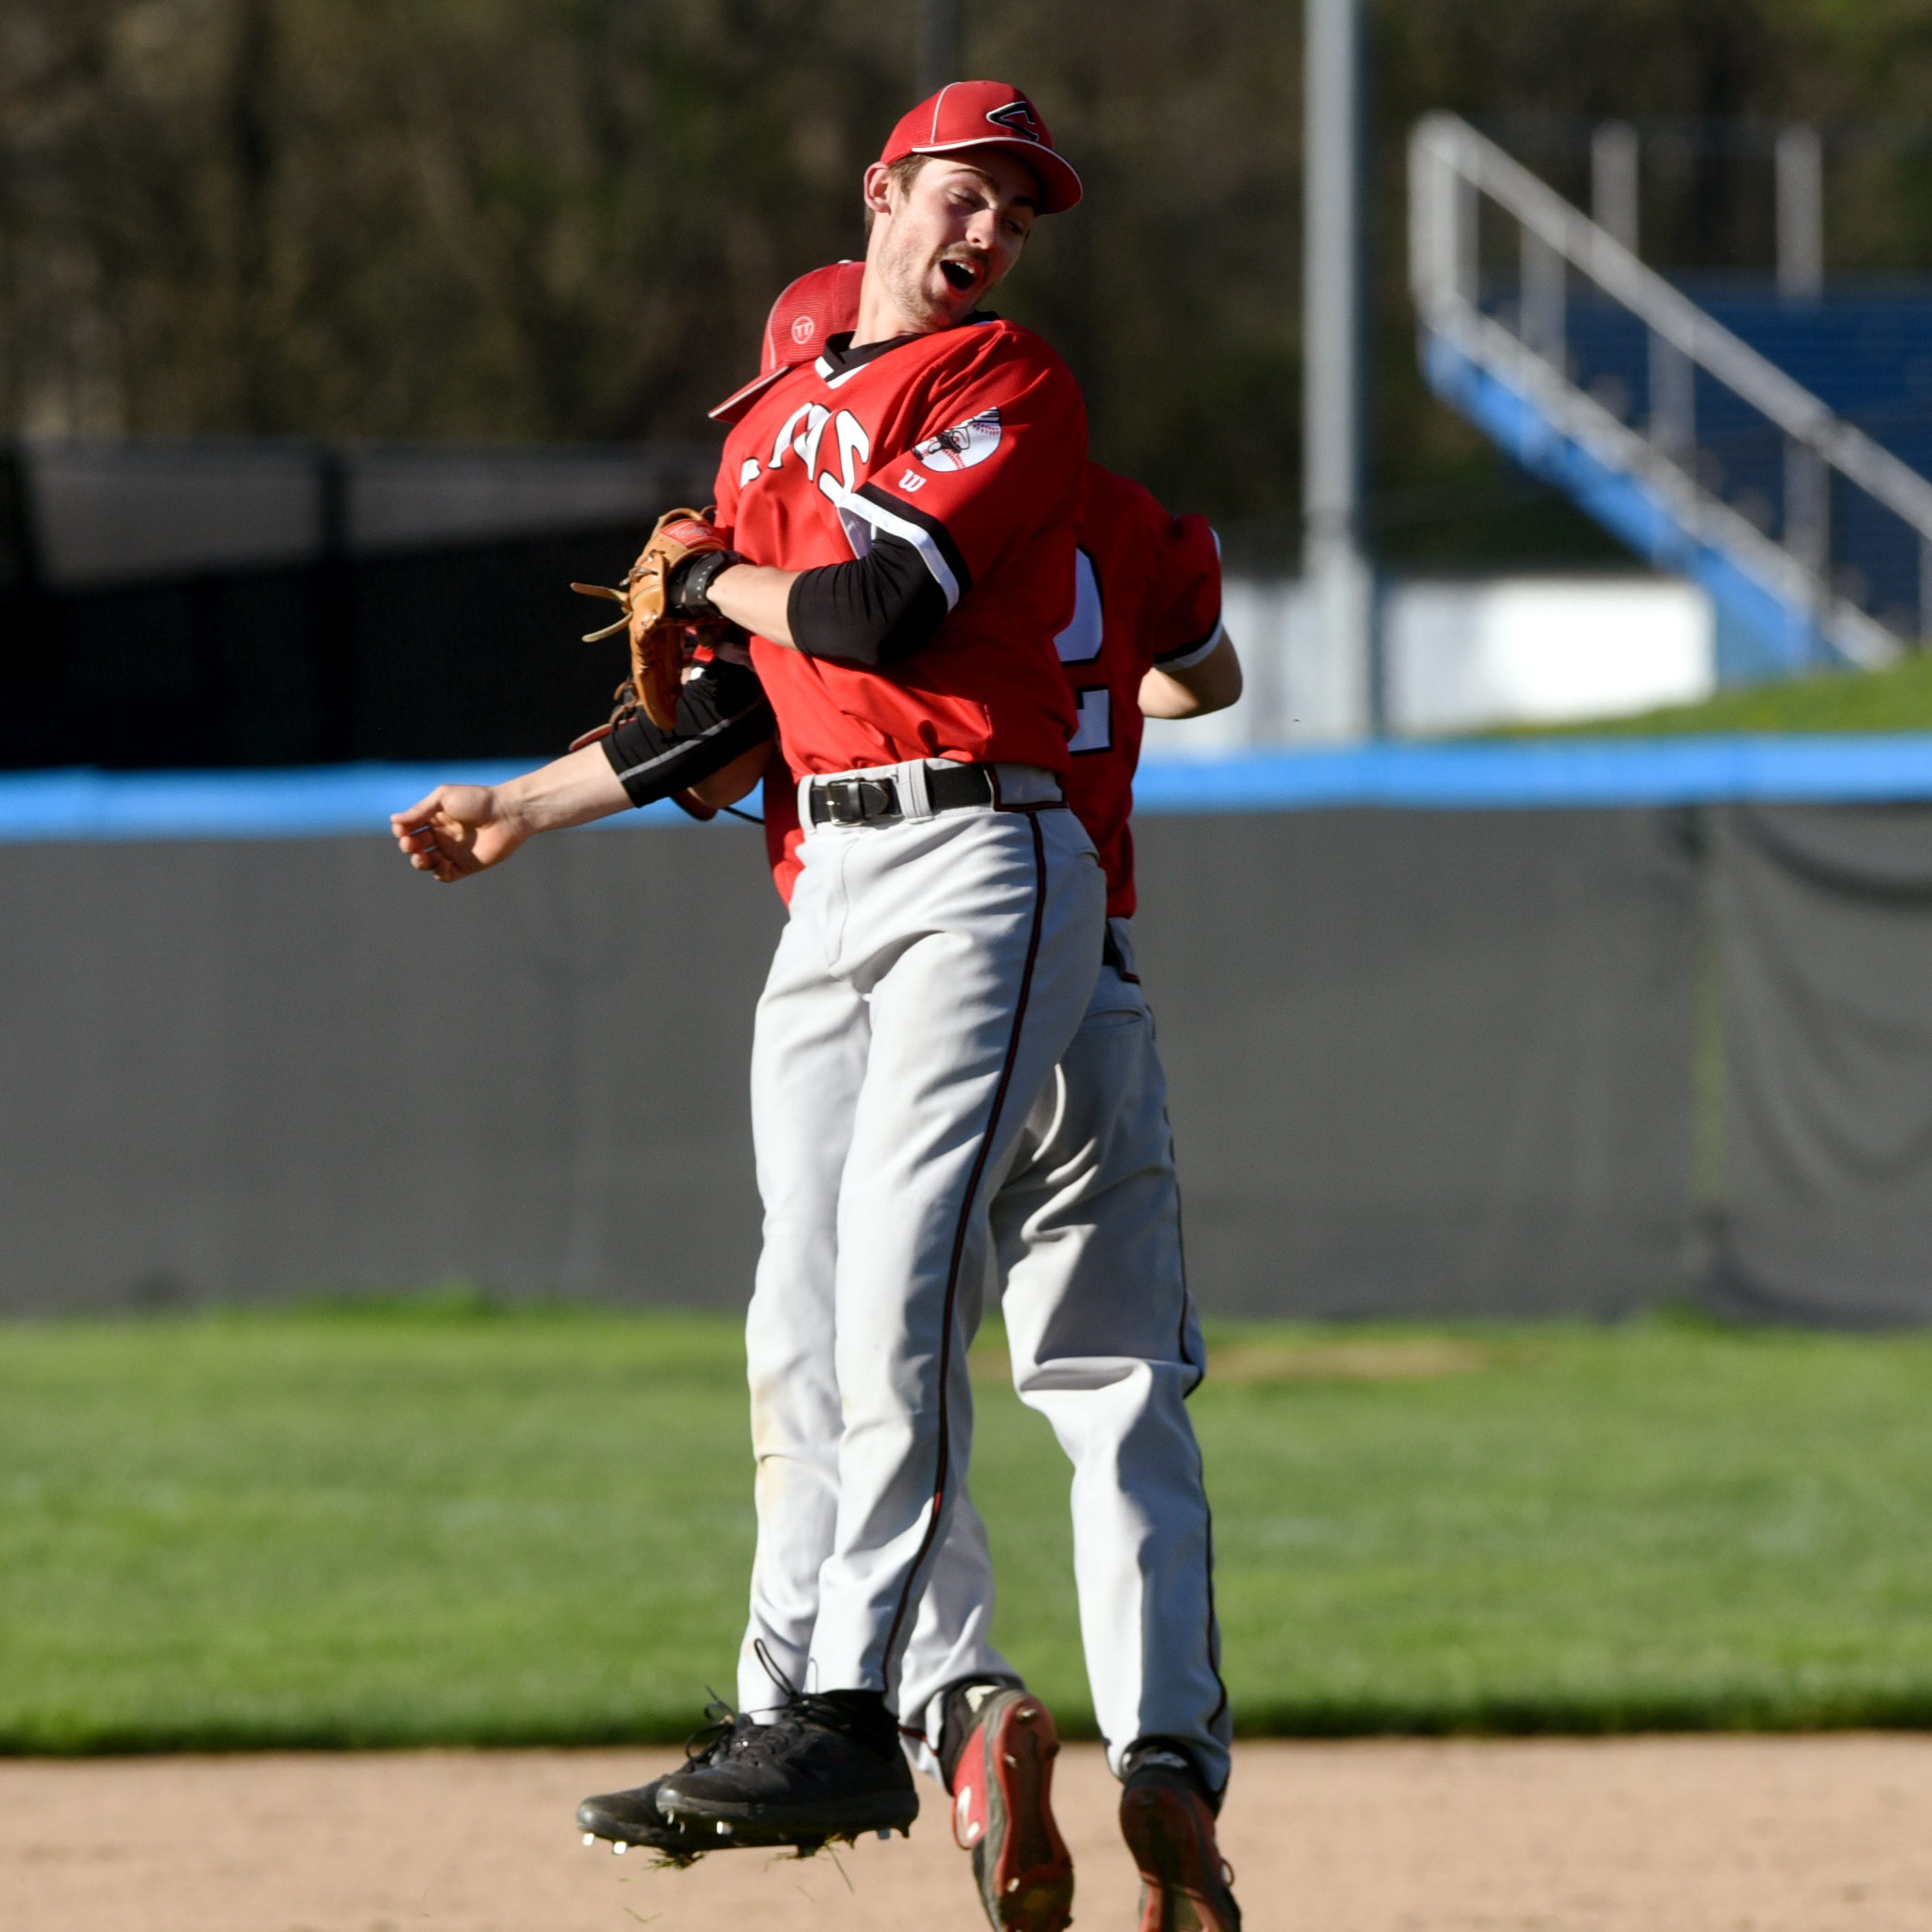 Escape act: Coshocton baseball staves off Zanesville